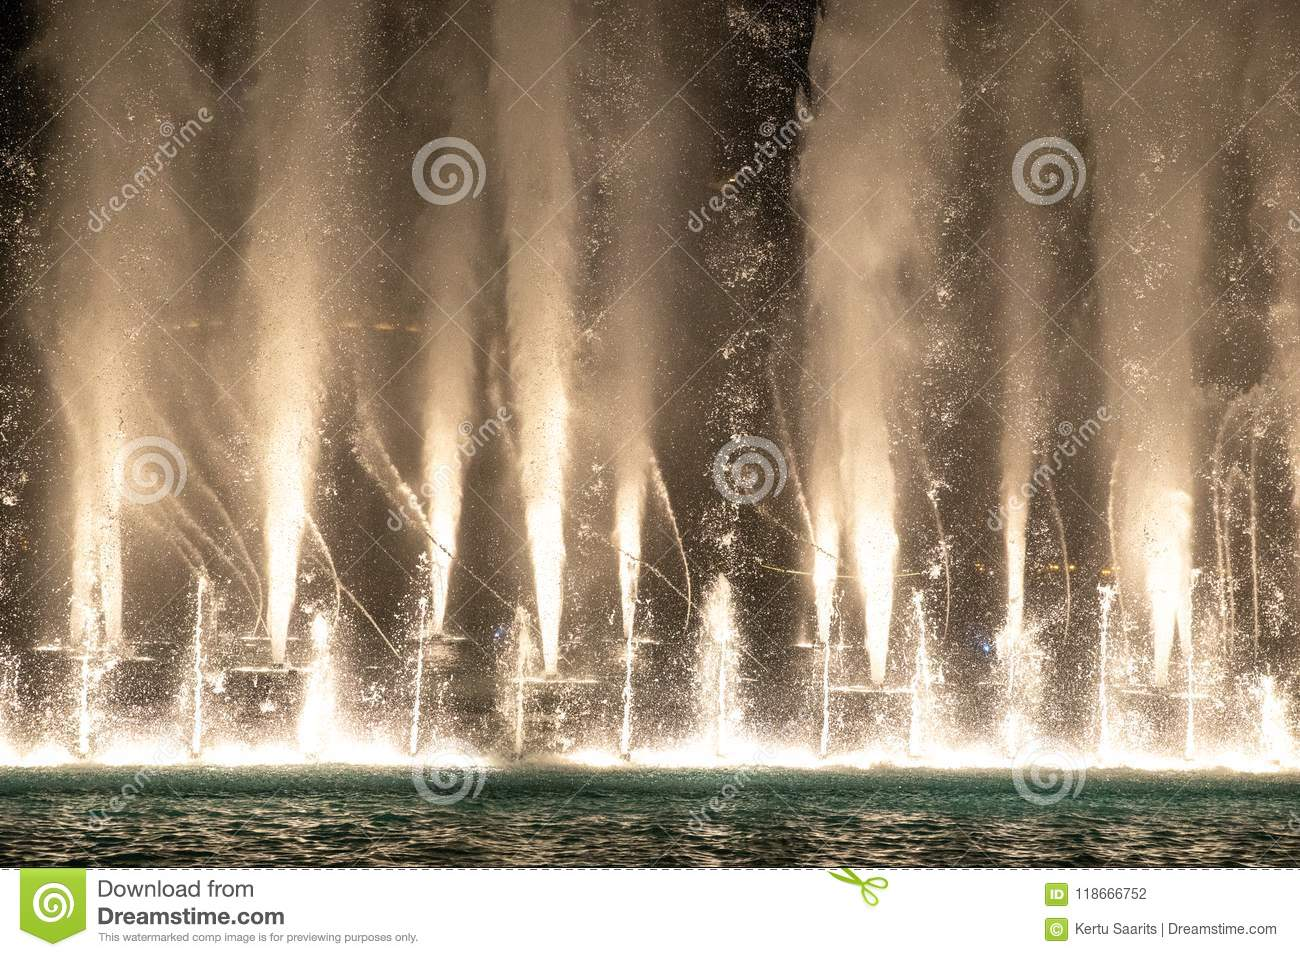 Water and light show of dubai mall fountains. Stock photo image.